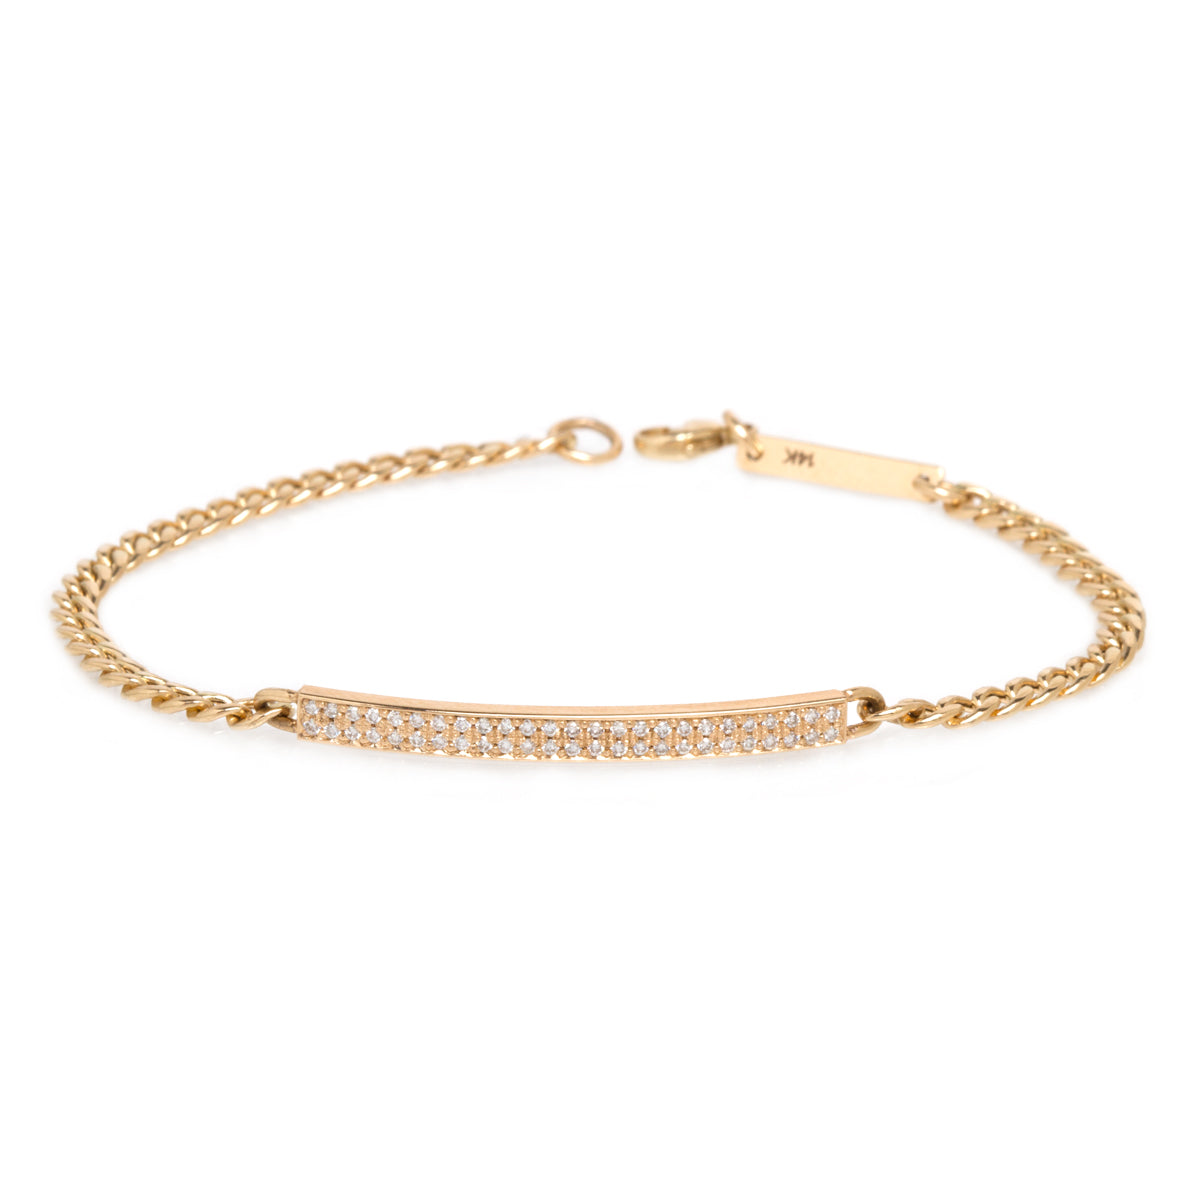 14k pave small curb chain ID bracelet